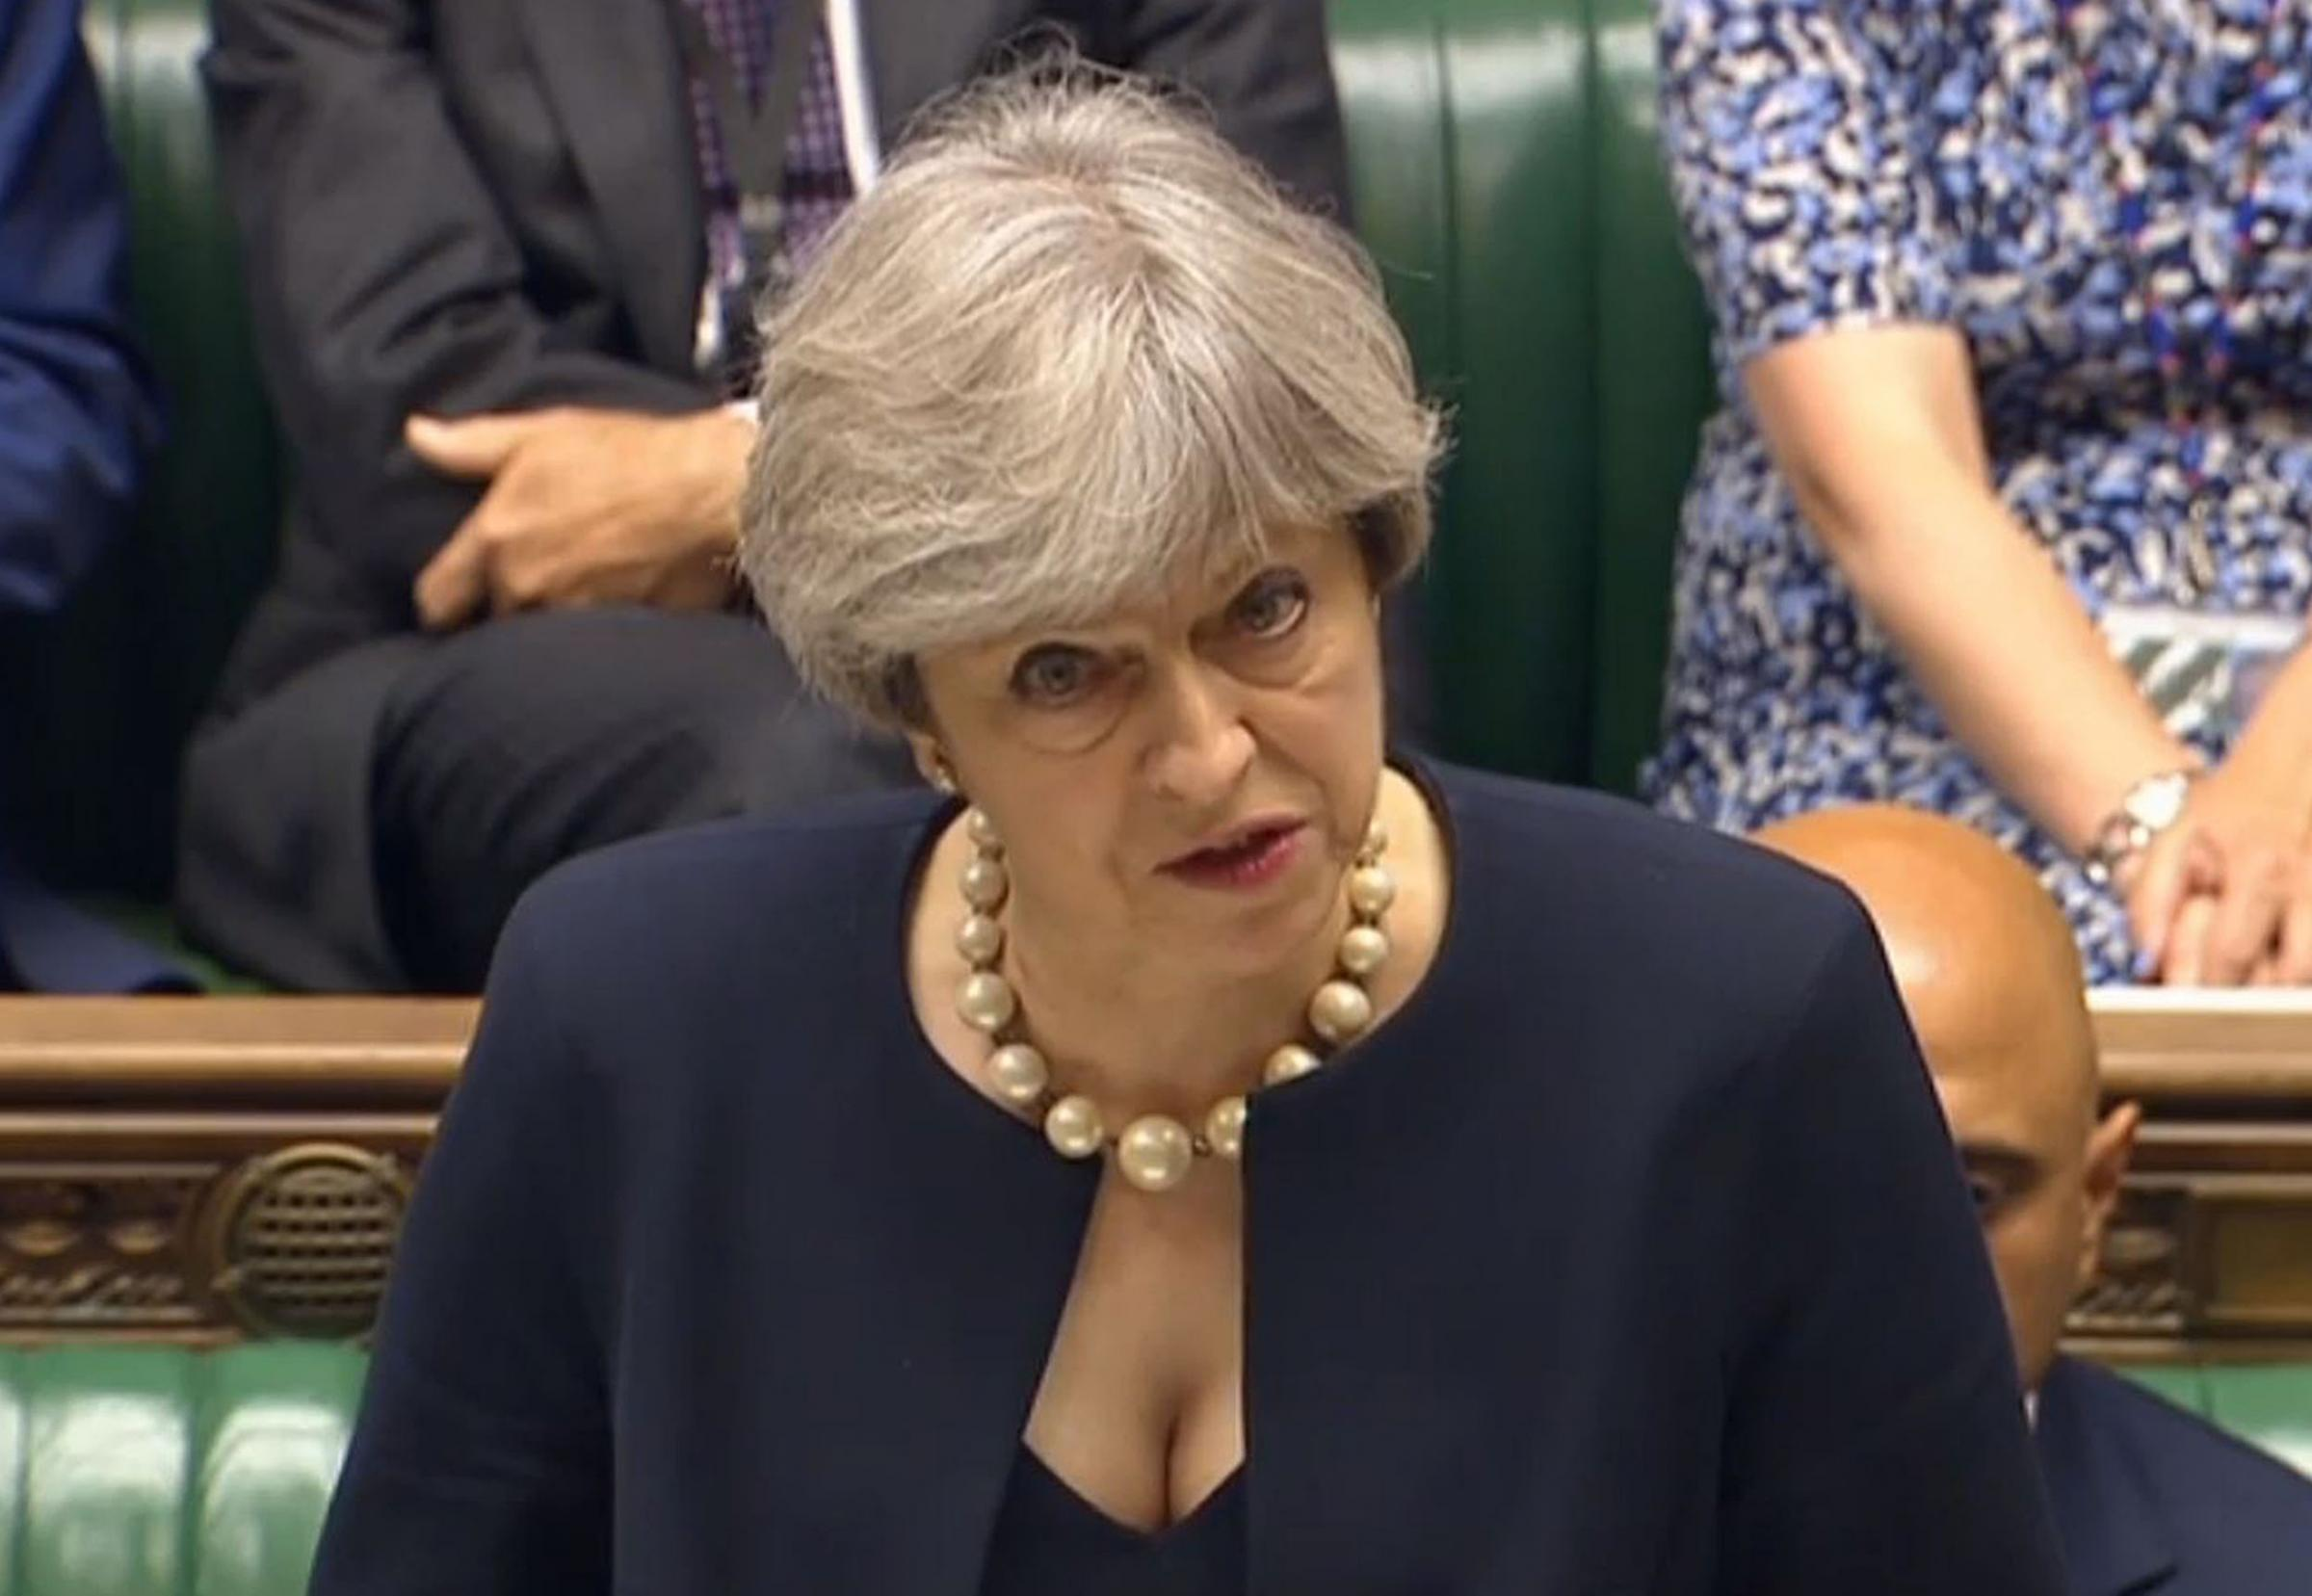 Prime Minister Theresa May speaks in the House of Commons, London, where she said that no immigration checks will be carried out on residents affected by the Grenfell Tower fire. PRESS ASSOCIATION Photo. Picture date: Thursday June 22, 2017. See PA story